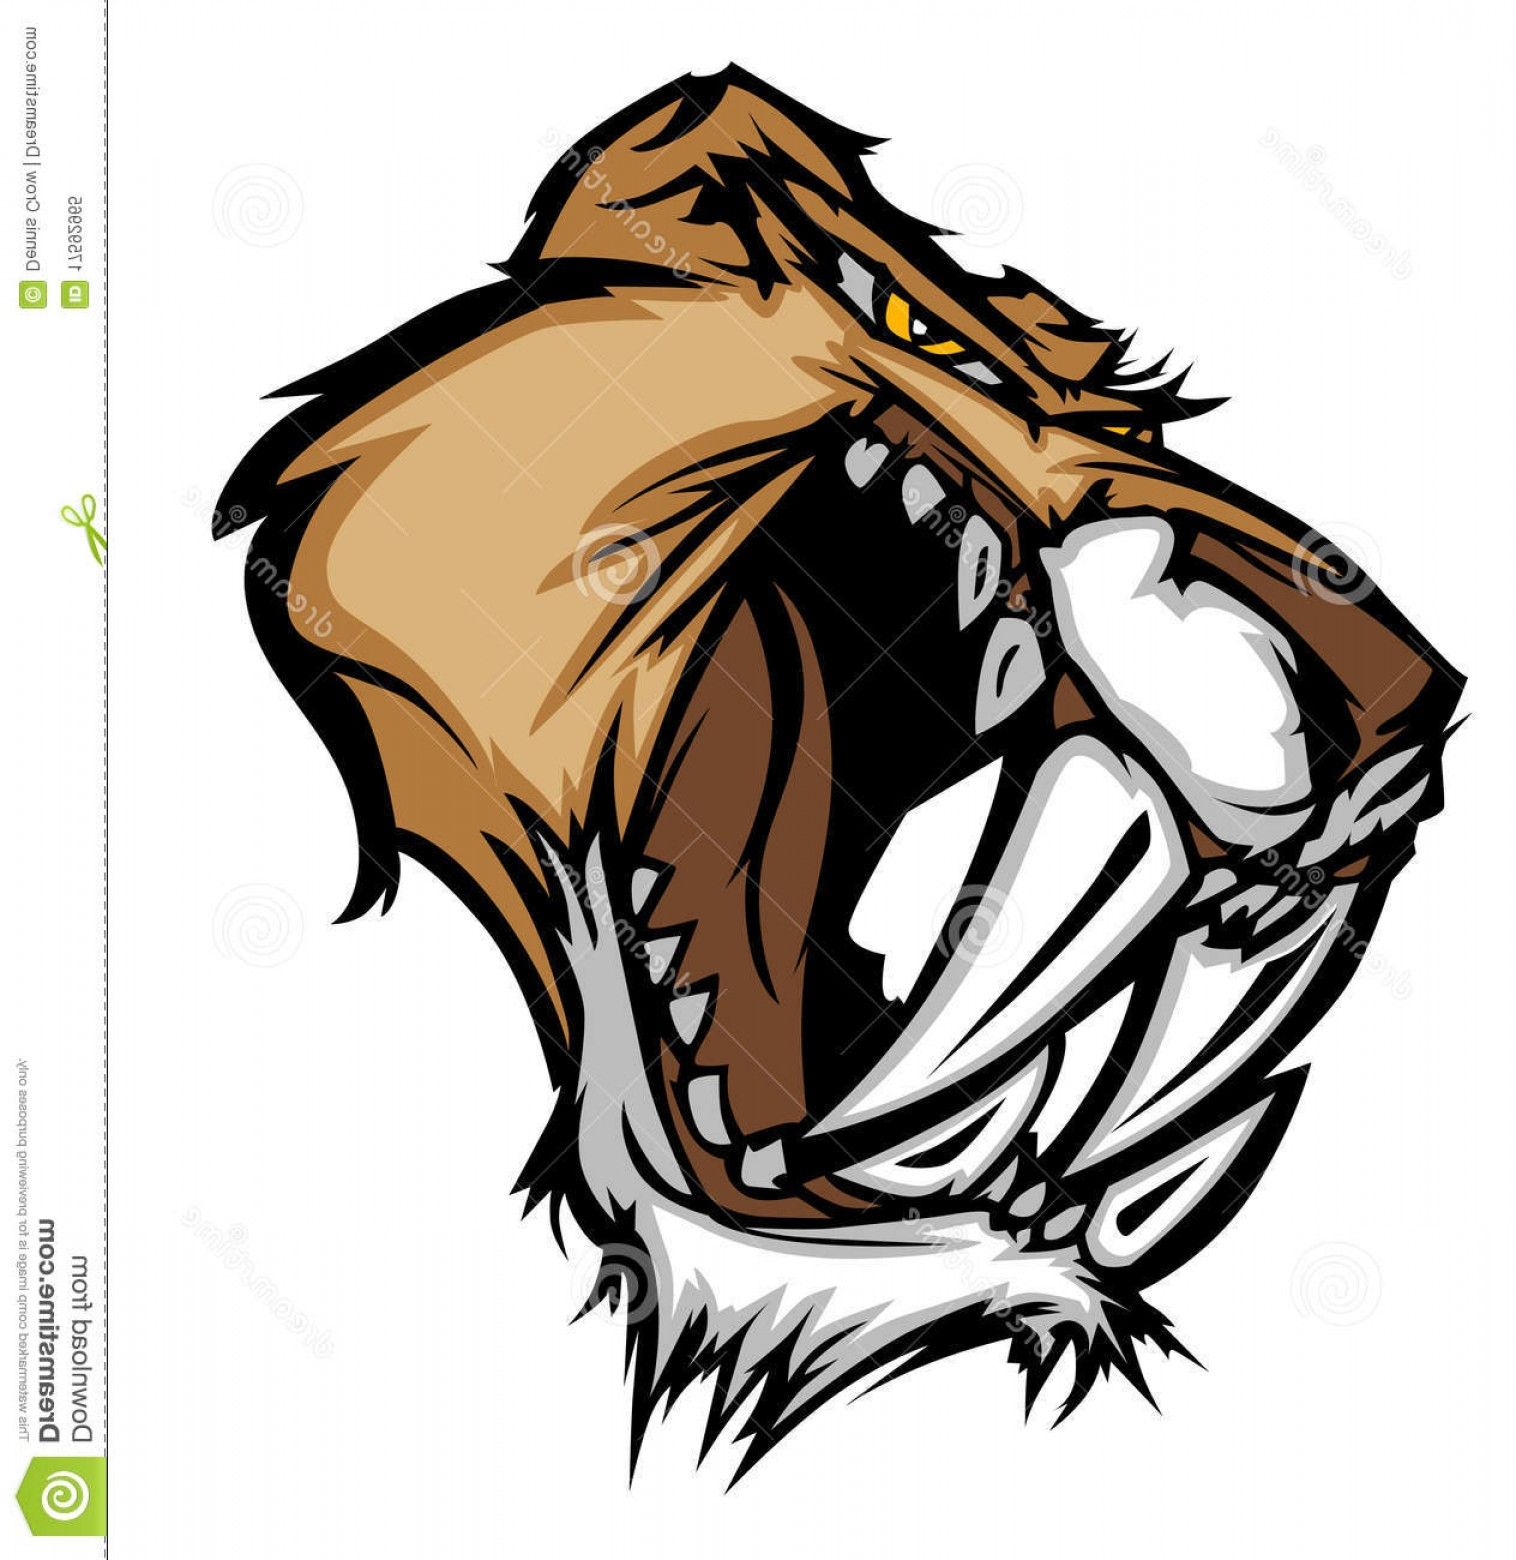 Cougar Logo Vector: Royalty Free Stock Photo Panther Cougar Mascot Vector Logo Image